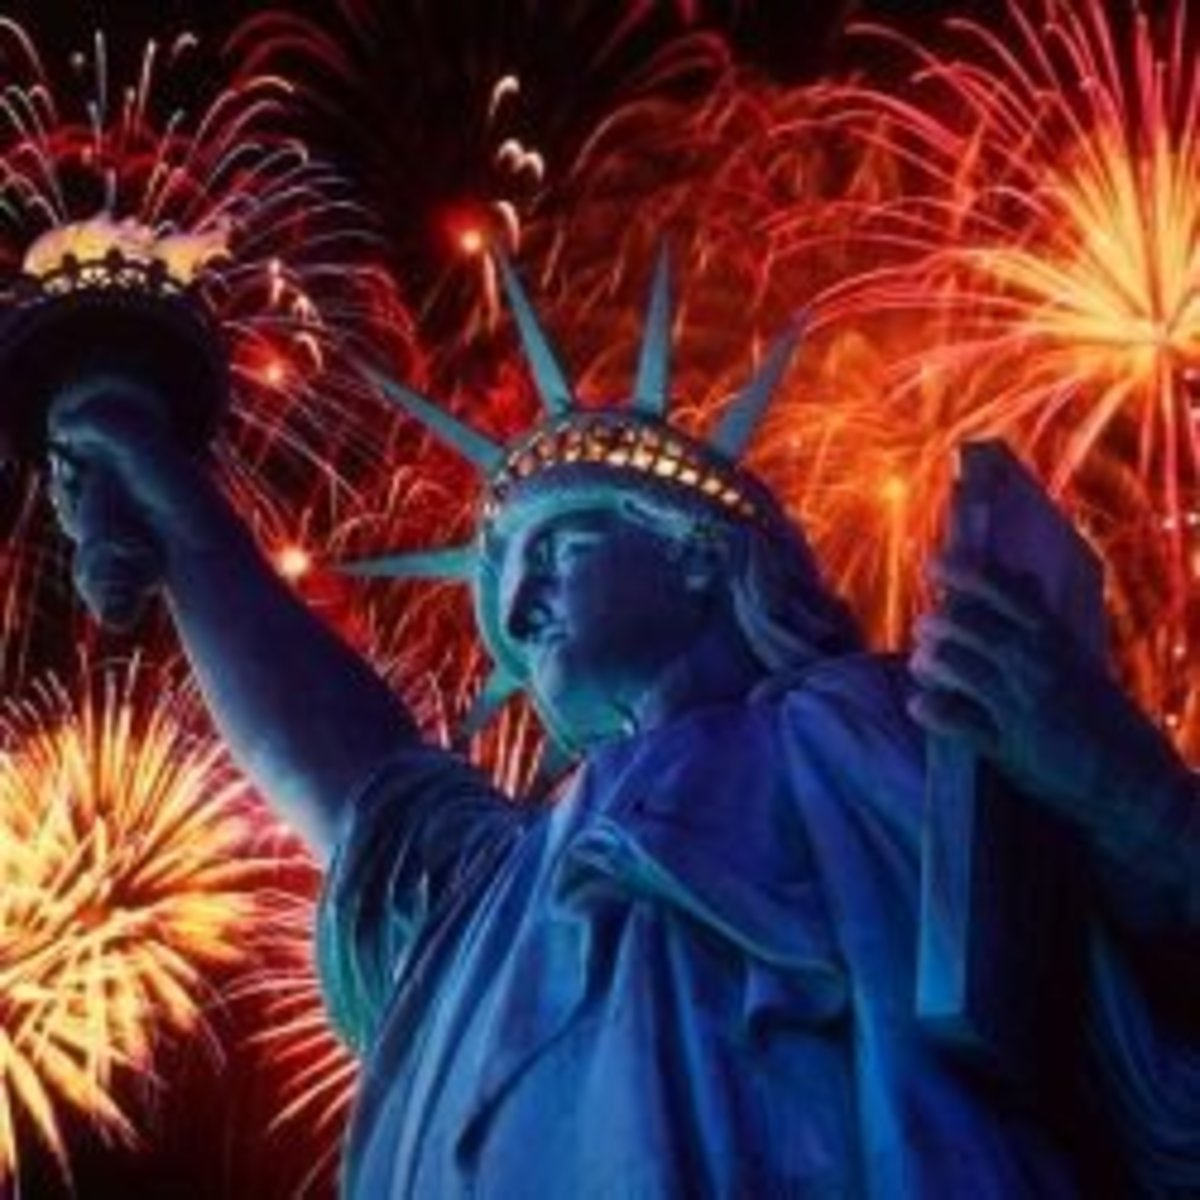 Image credit: http://www.graphicshunt.com/wallpapers/images/fireworks_over_the_statue_of_liberty-1006.htm